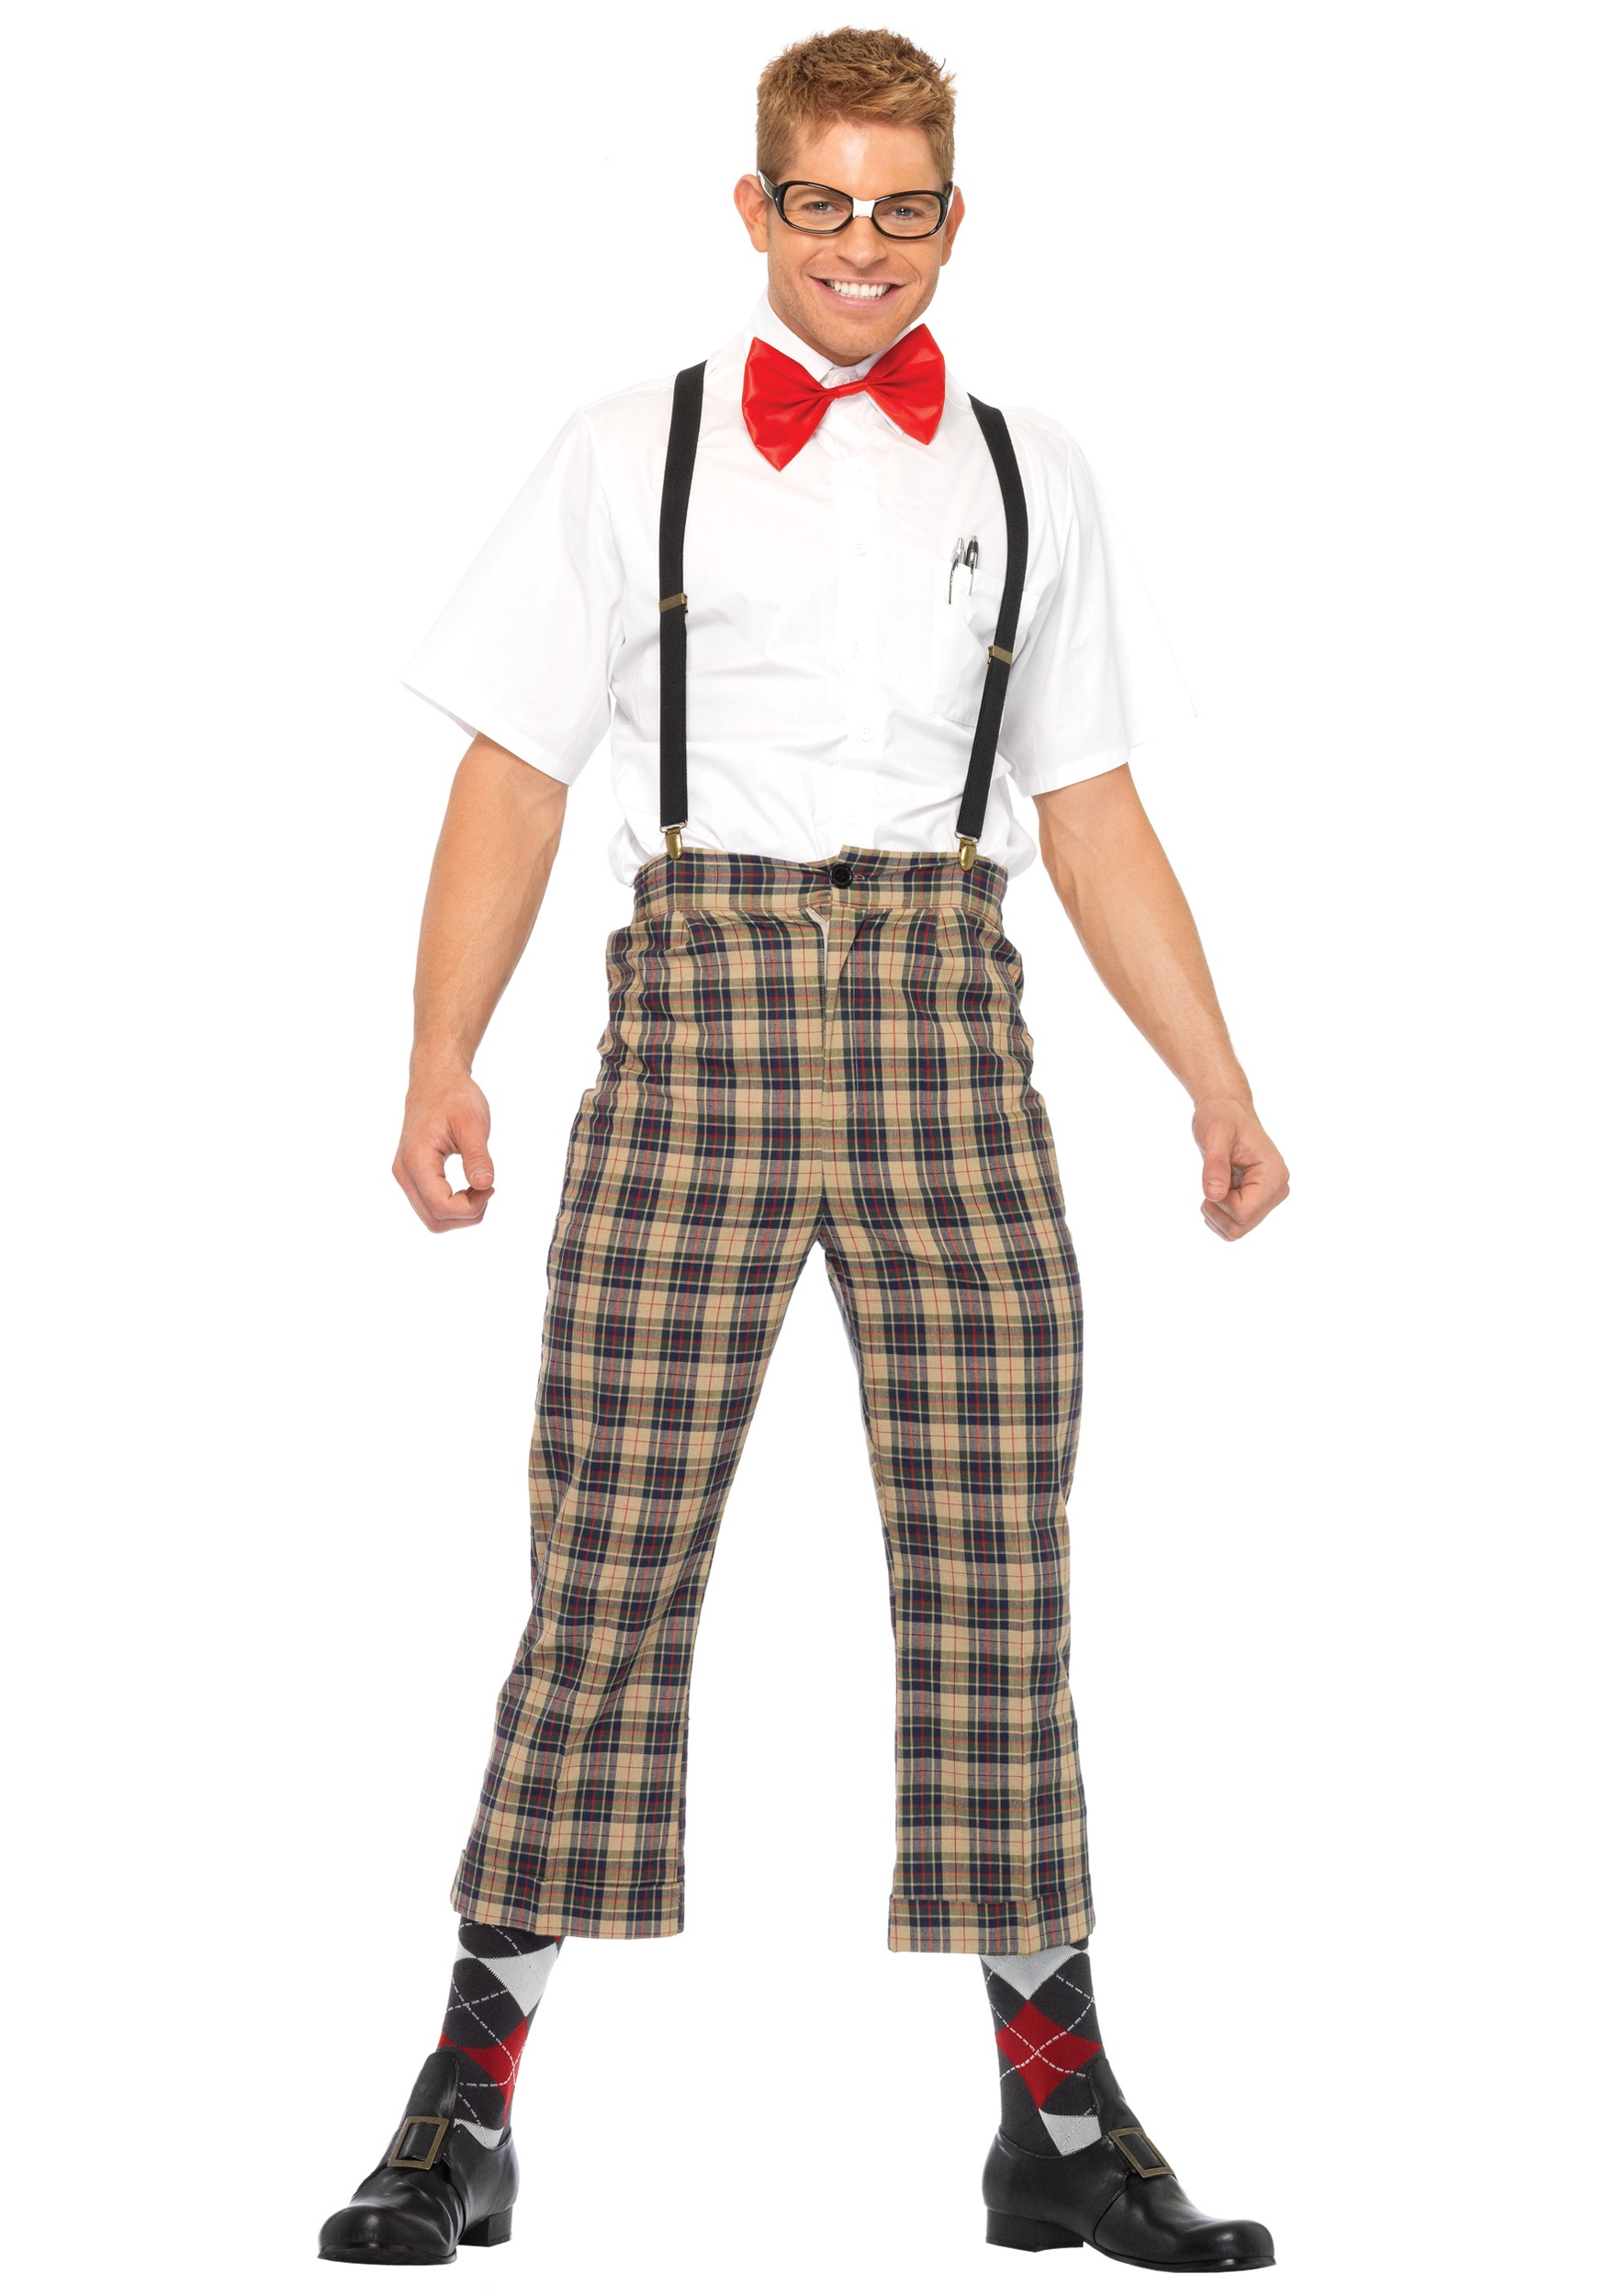 Mens Nerdy Geek Costume - Funny Nerd Costumes for Adults